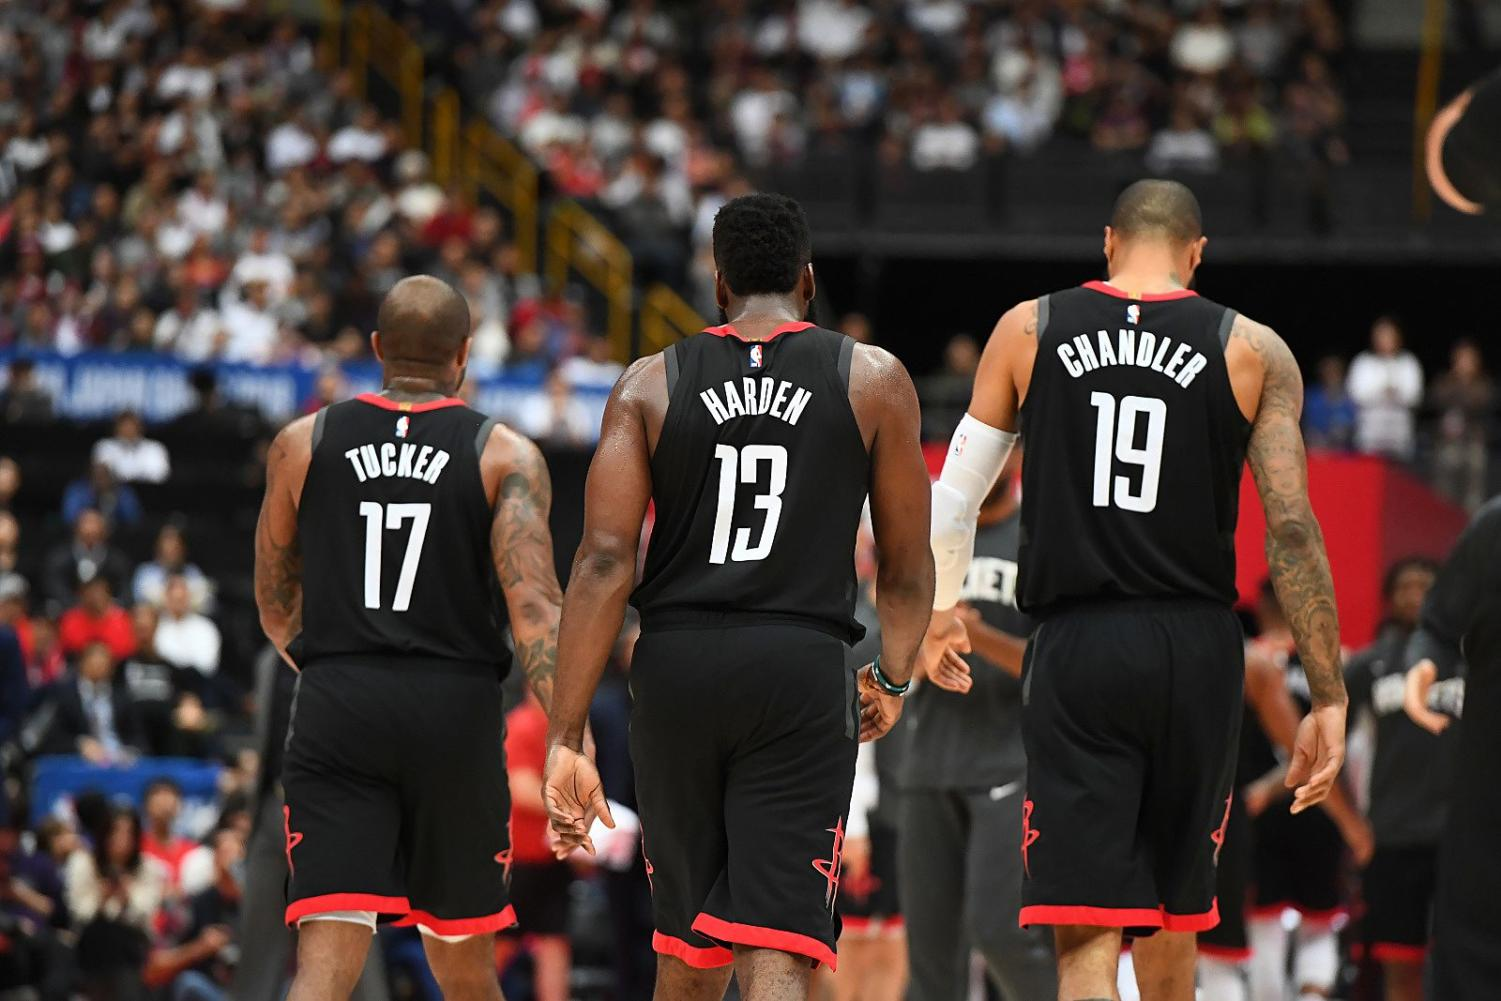 SAITAMA%2C+JAPAN+-+OCTOBER+10%3A+P.J.+Tucker+%2317%2C+James+Harden+%2313+of+the+Houston+Rockets%2C+and+Tyson+Chandler+%2319+of+the+Houston+Rockets+are+seen+on+court+together+against+the+Toronto+Raptors+during+the+2019+NBA+Japan+Game+on+October+10%2C+2019+at+Saitama+Super+Arena+in+Saitama%2C+Japan.+NOTE+TO+USER%3A+User+expressly+acknowledges+and+agrees+that%2C+by+downloading+and%2For+using+this+Photograph%2C+user+is+consenting+to+the+terms+and+conditions+of+the+Getty+Images+License+Agreement.+Mandatory+Copyright+Notice%3A+Copyright+2019+NBAE+%28Photo+by+Garrett+Ellwood%2FNBAE+via+Getty+Images%29